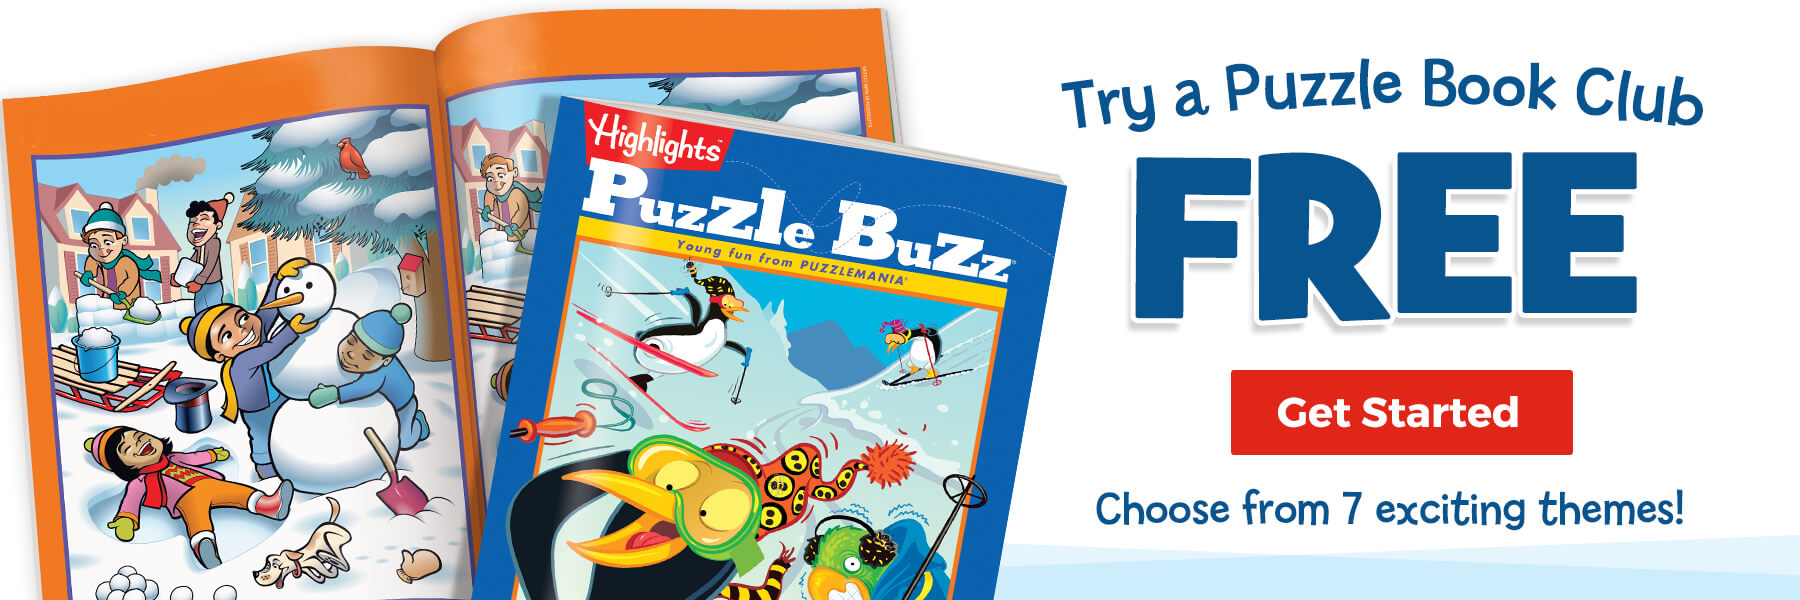 Try a Puzzle Book Club FREE and choose from 7 exciting themes.